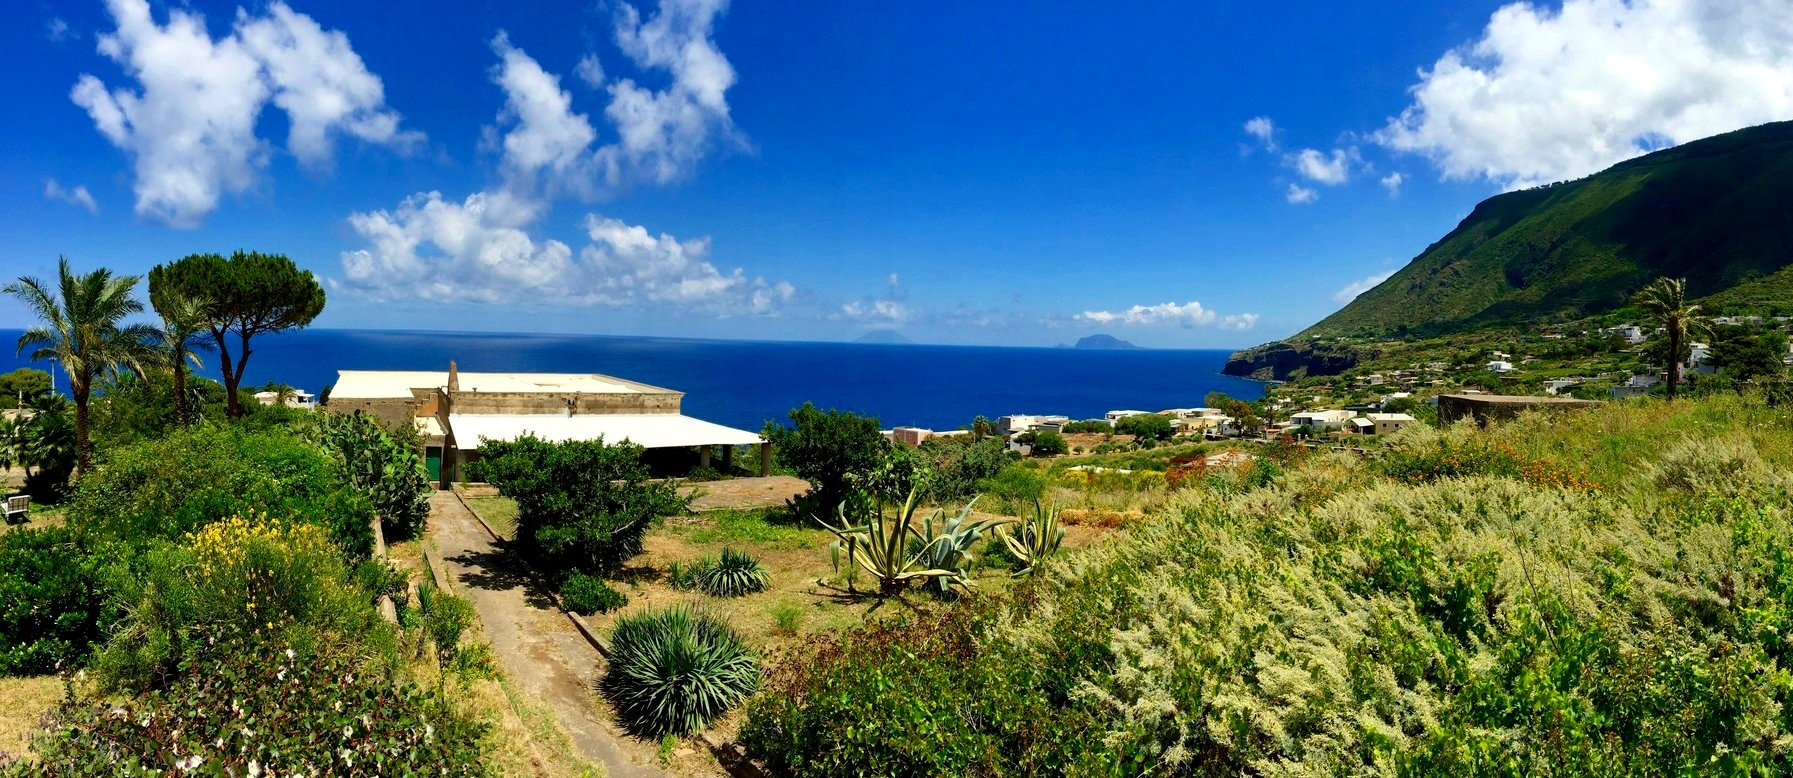 Natural hidden paradises and topnotch hospitality - View of Stromboli and Panarea from Salina, Unesco World Heritage Site of the Aeolian Islands